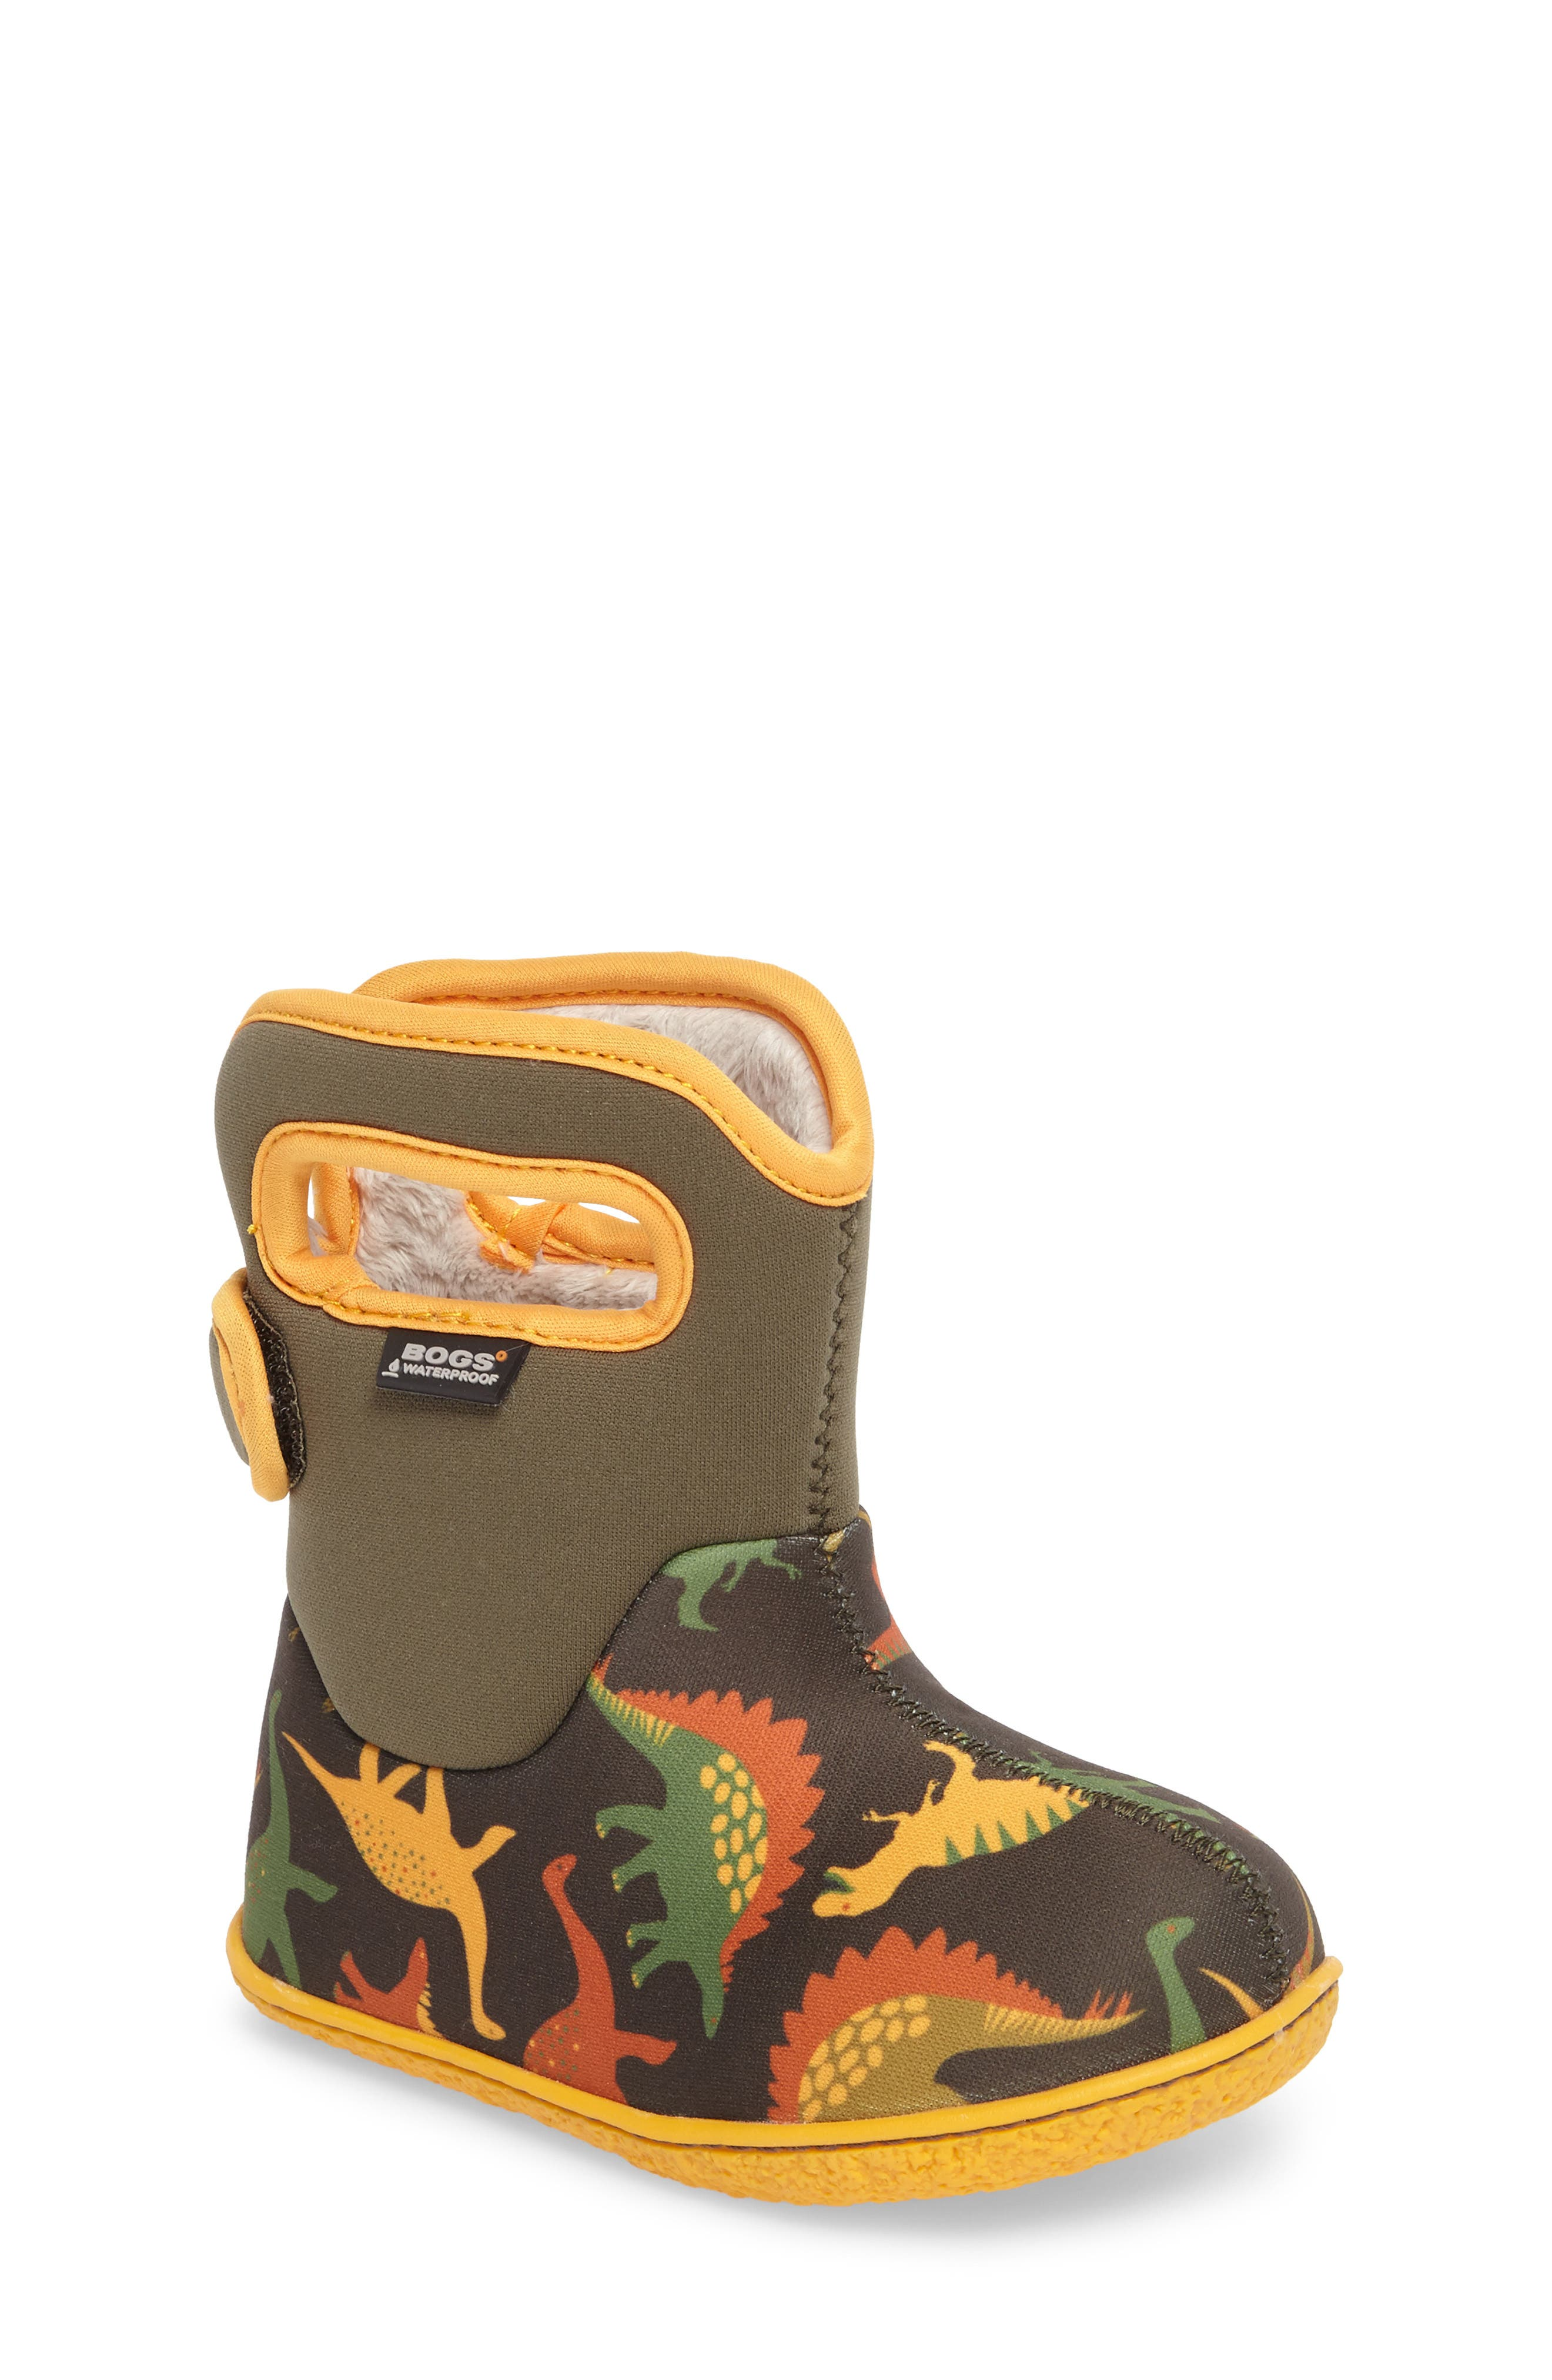 Main Image - Bogs Baby Bog Classic Dino Insulated Waterproof Boot (Baby, Walker & Toddler)